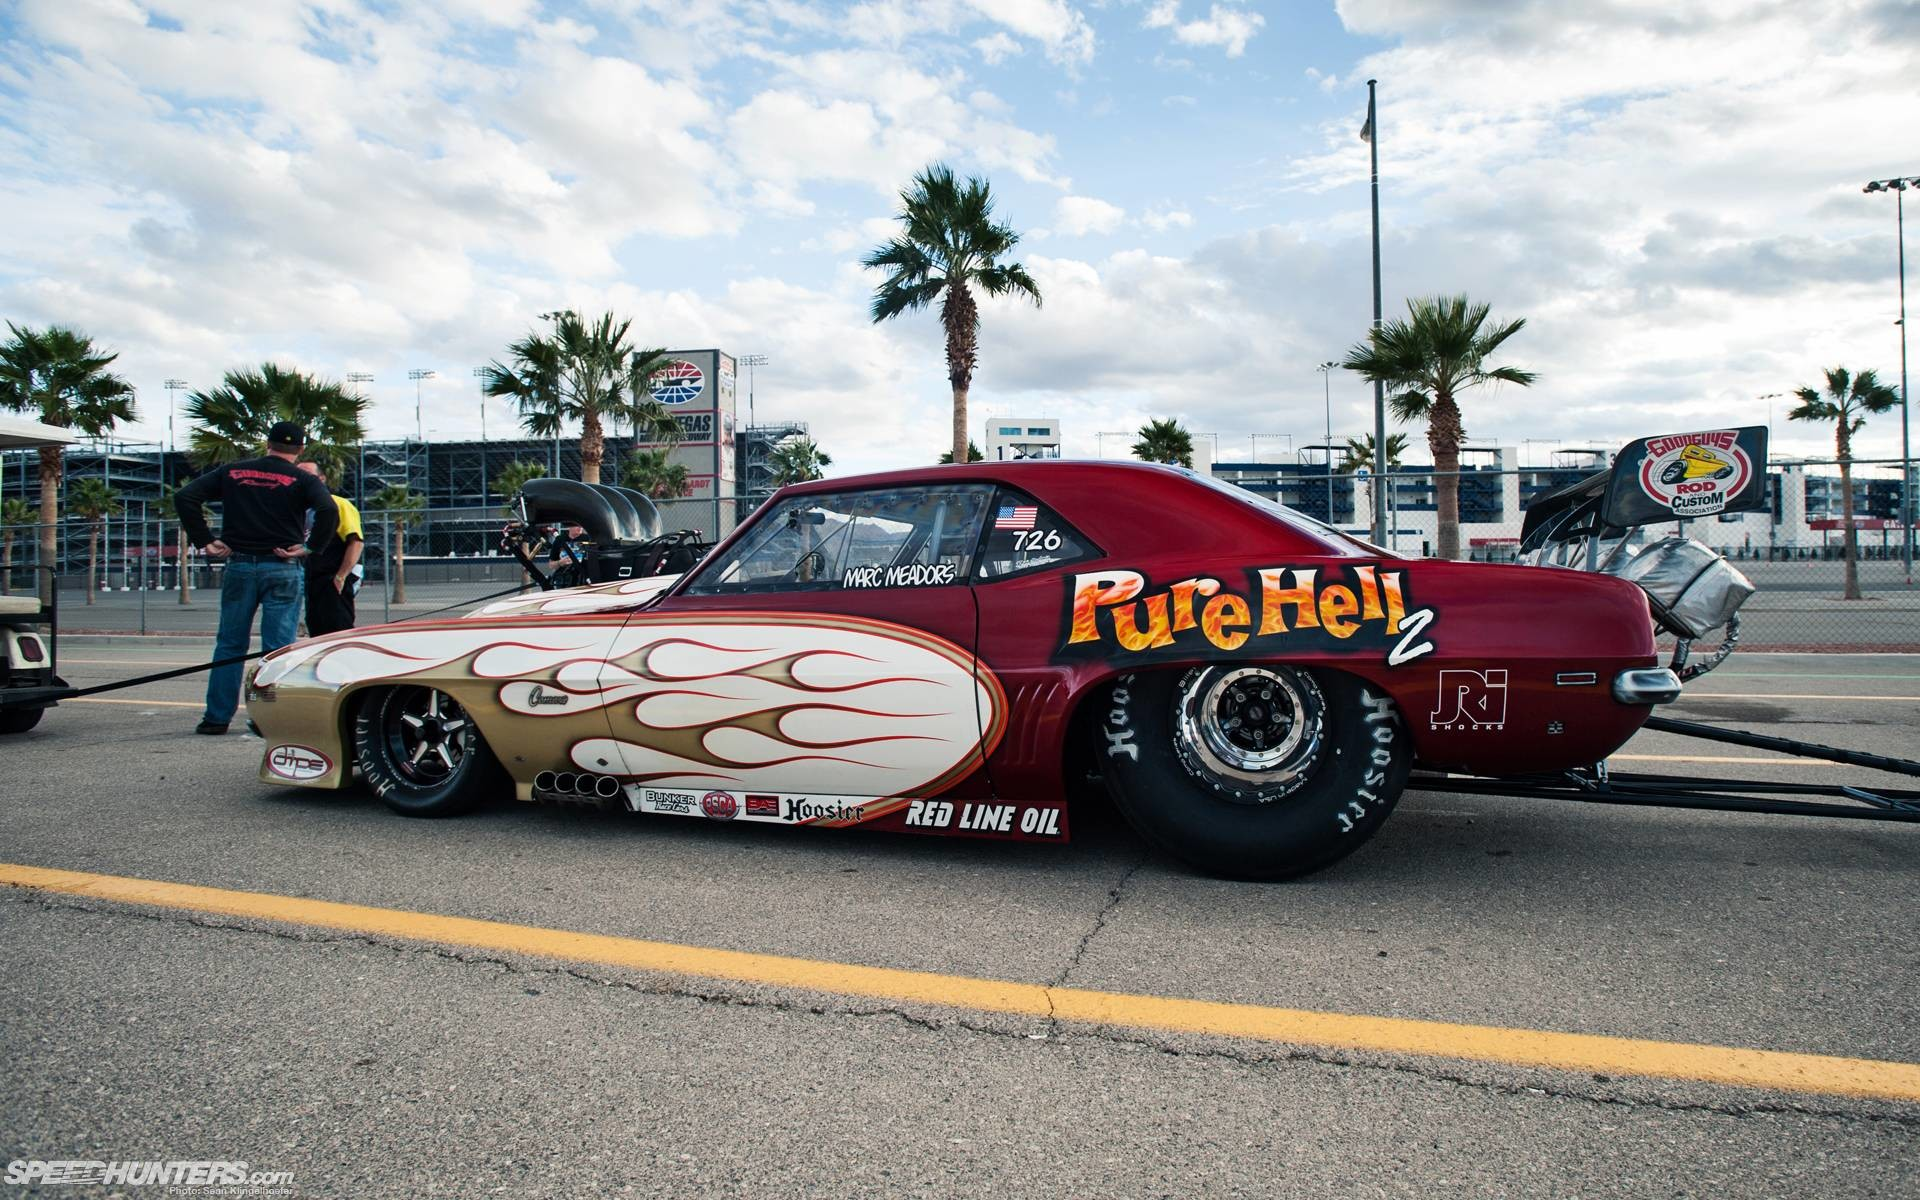 Res: 1920x1200, Drag Racing 4250516 Wallpaper for Free | Excellent FHDQ Images